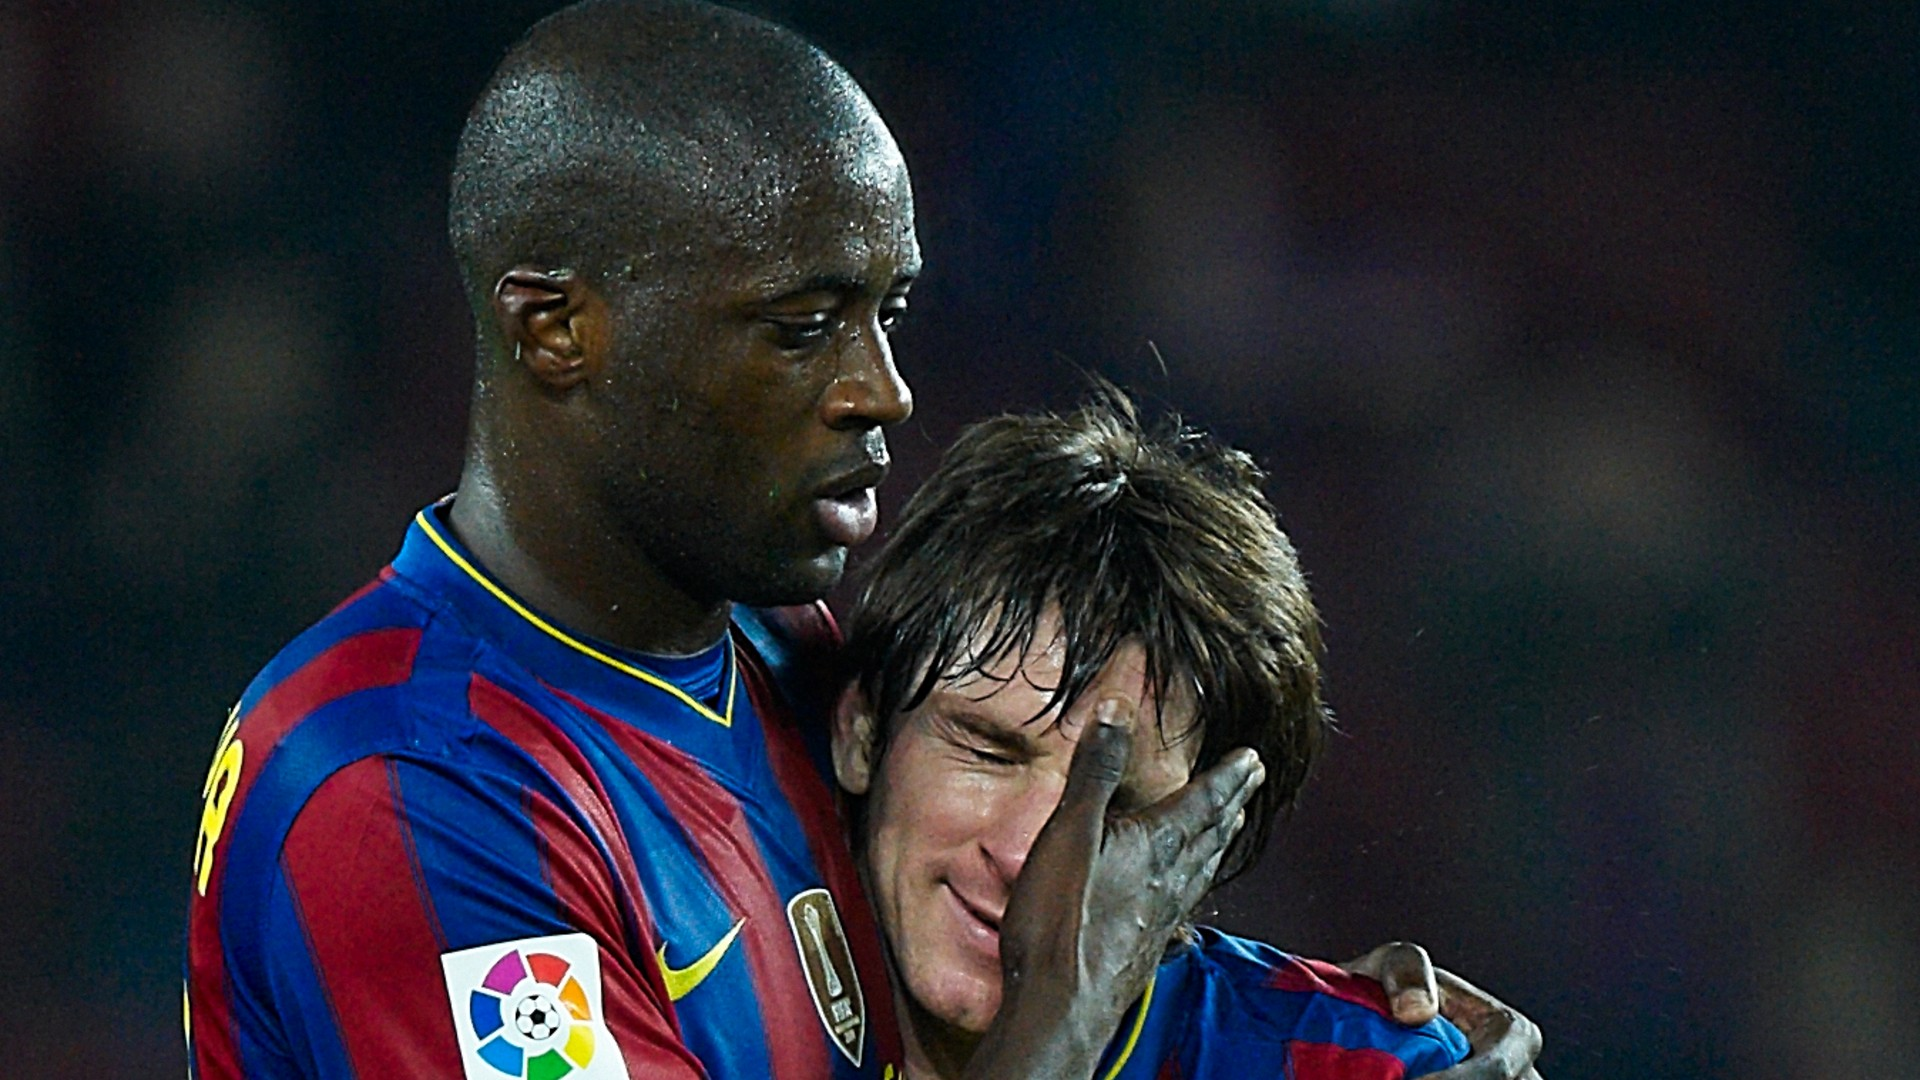 'What a special player you are!' – Yaya Toure pays tribute to Barcelona legend Messi